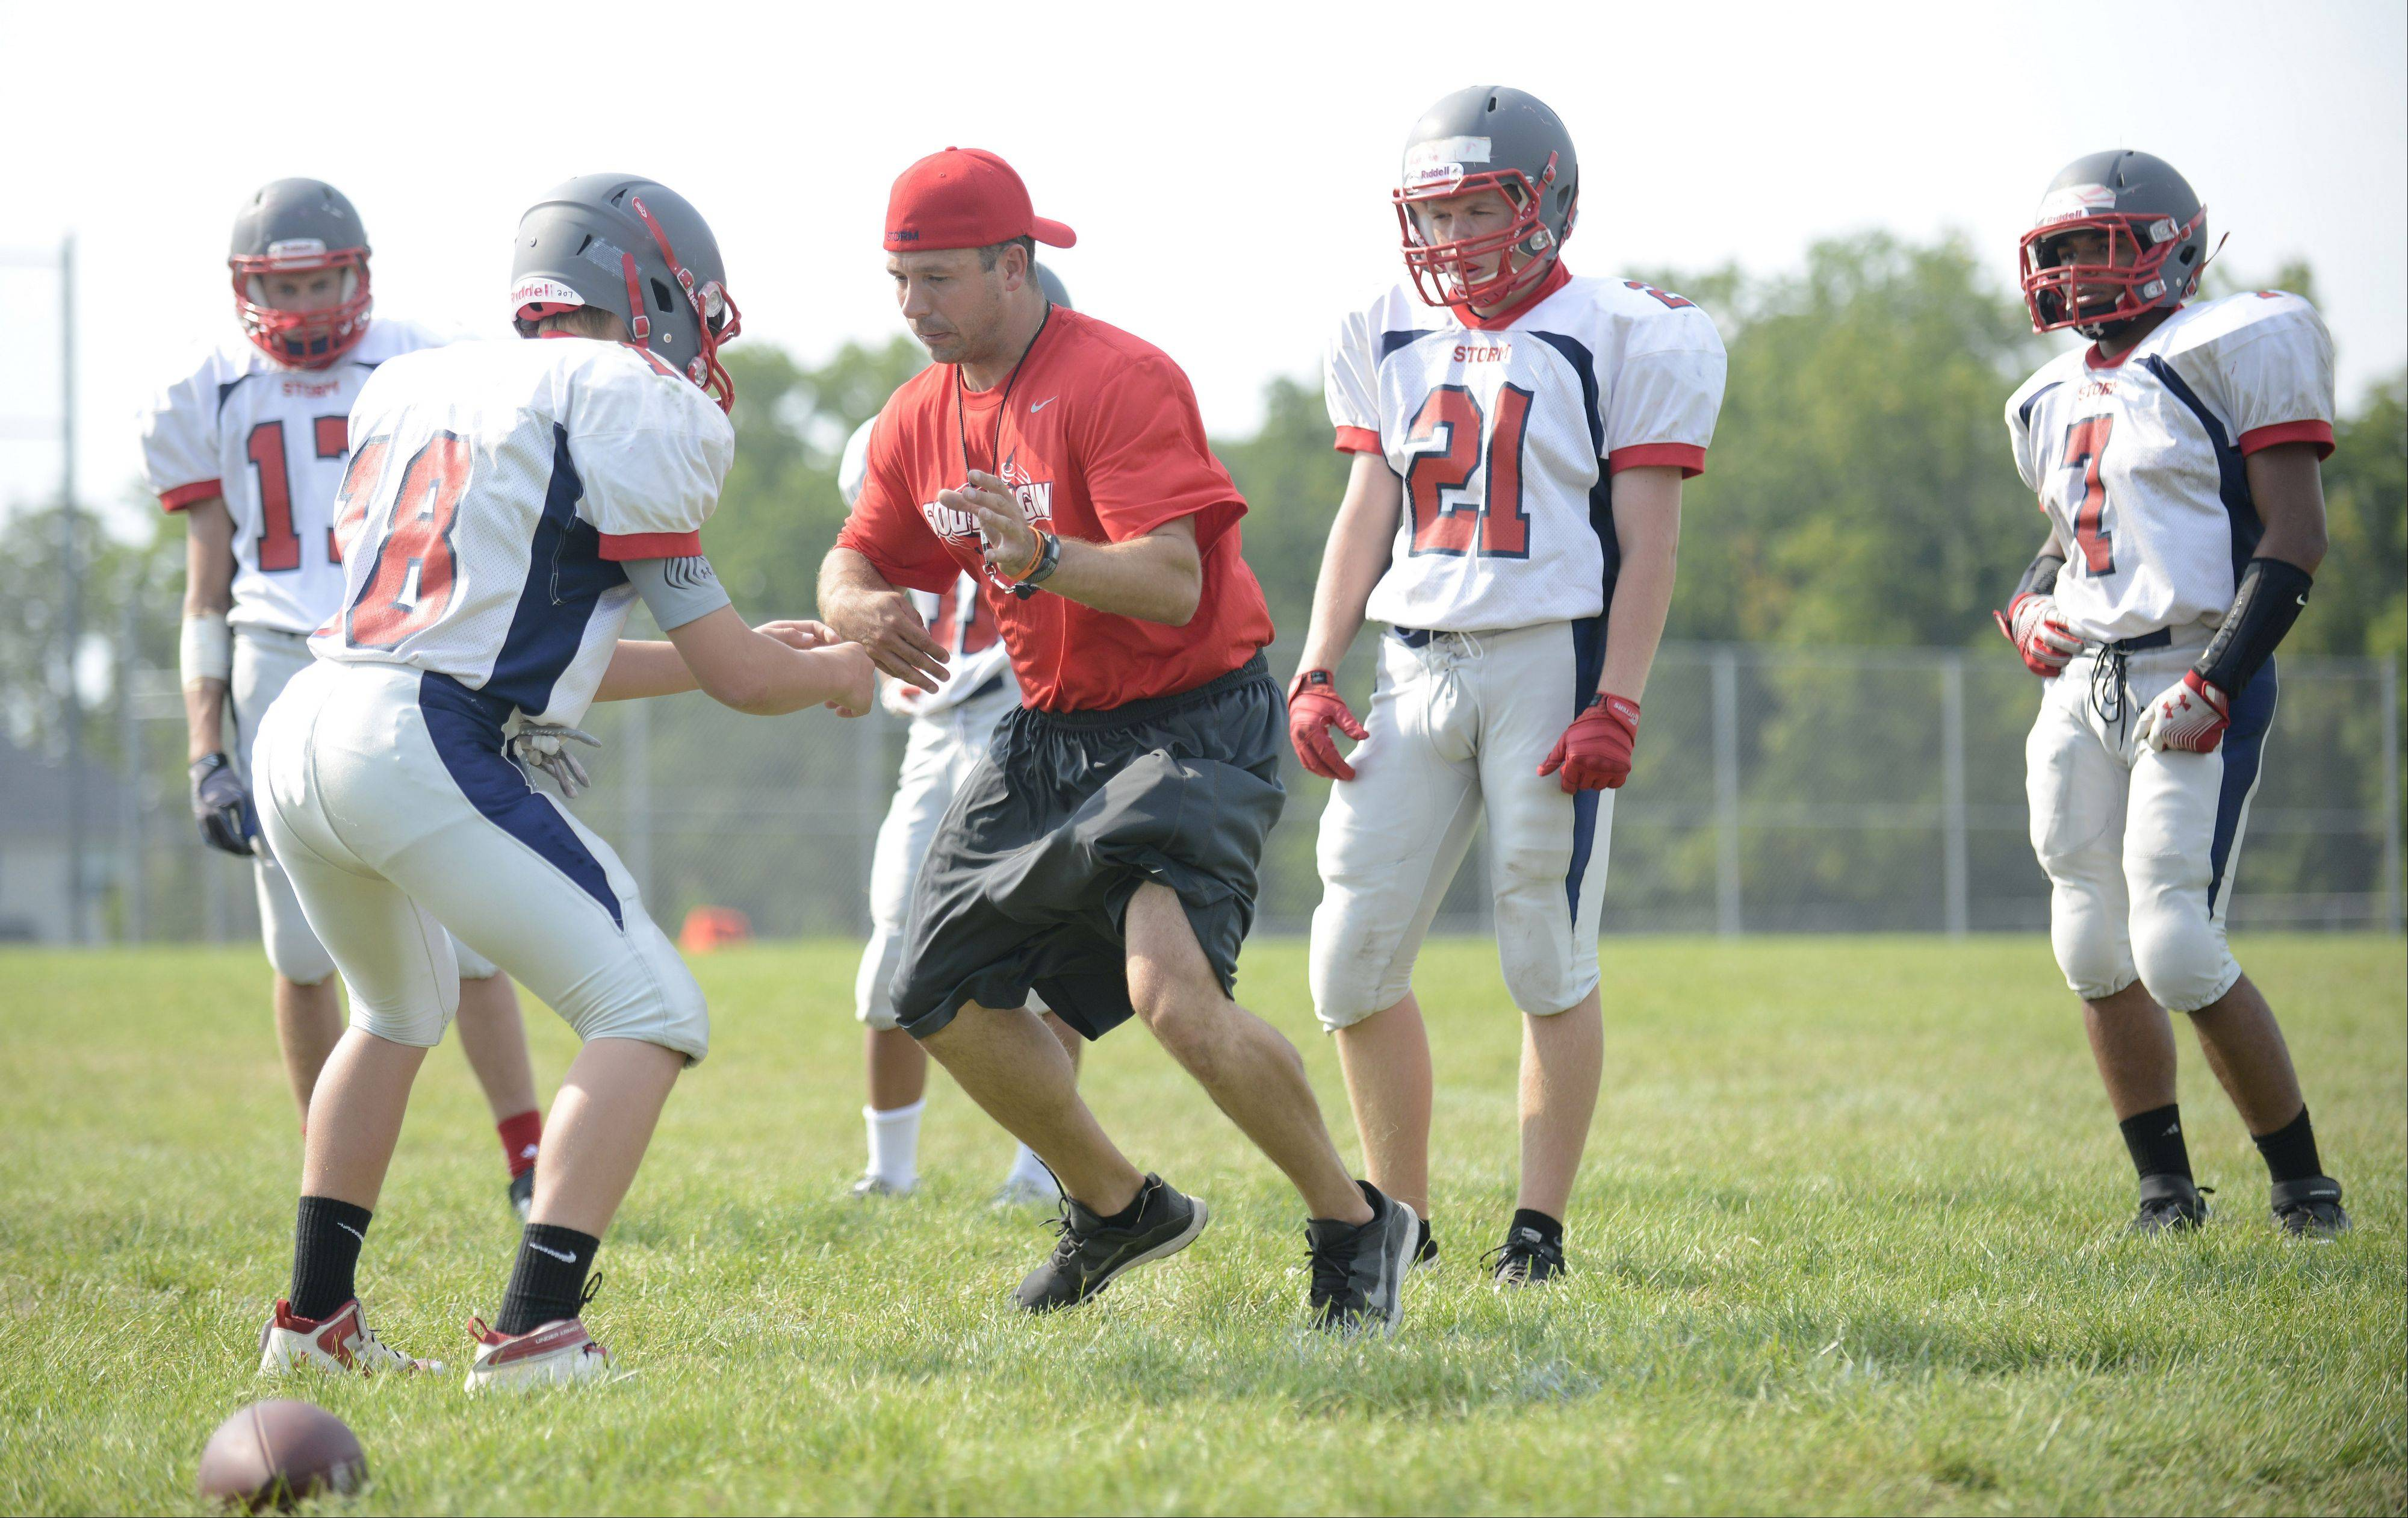 New South Elgin varsity football coach Pat Pistorio shows players how to break away from an opponent�s grip during practice.